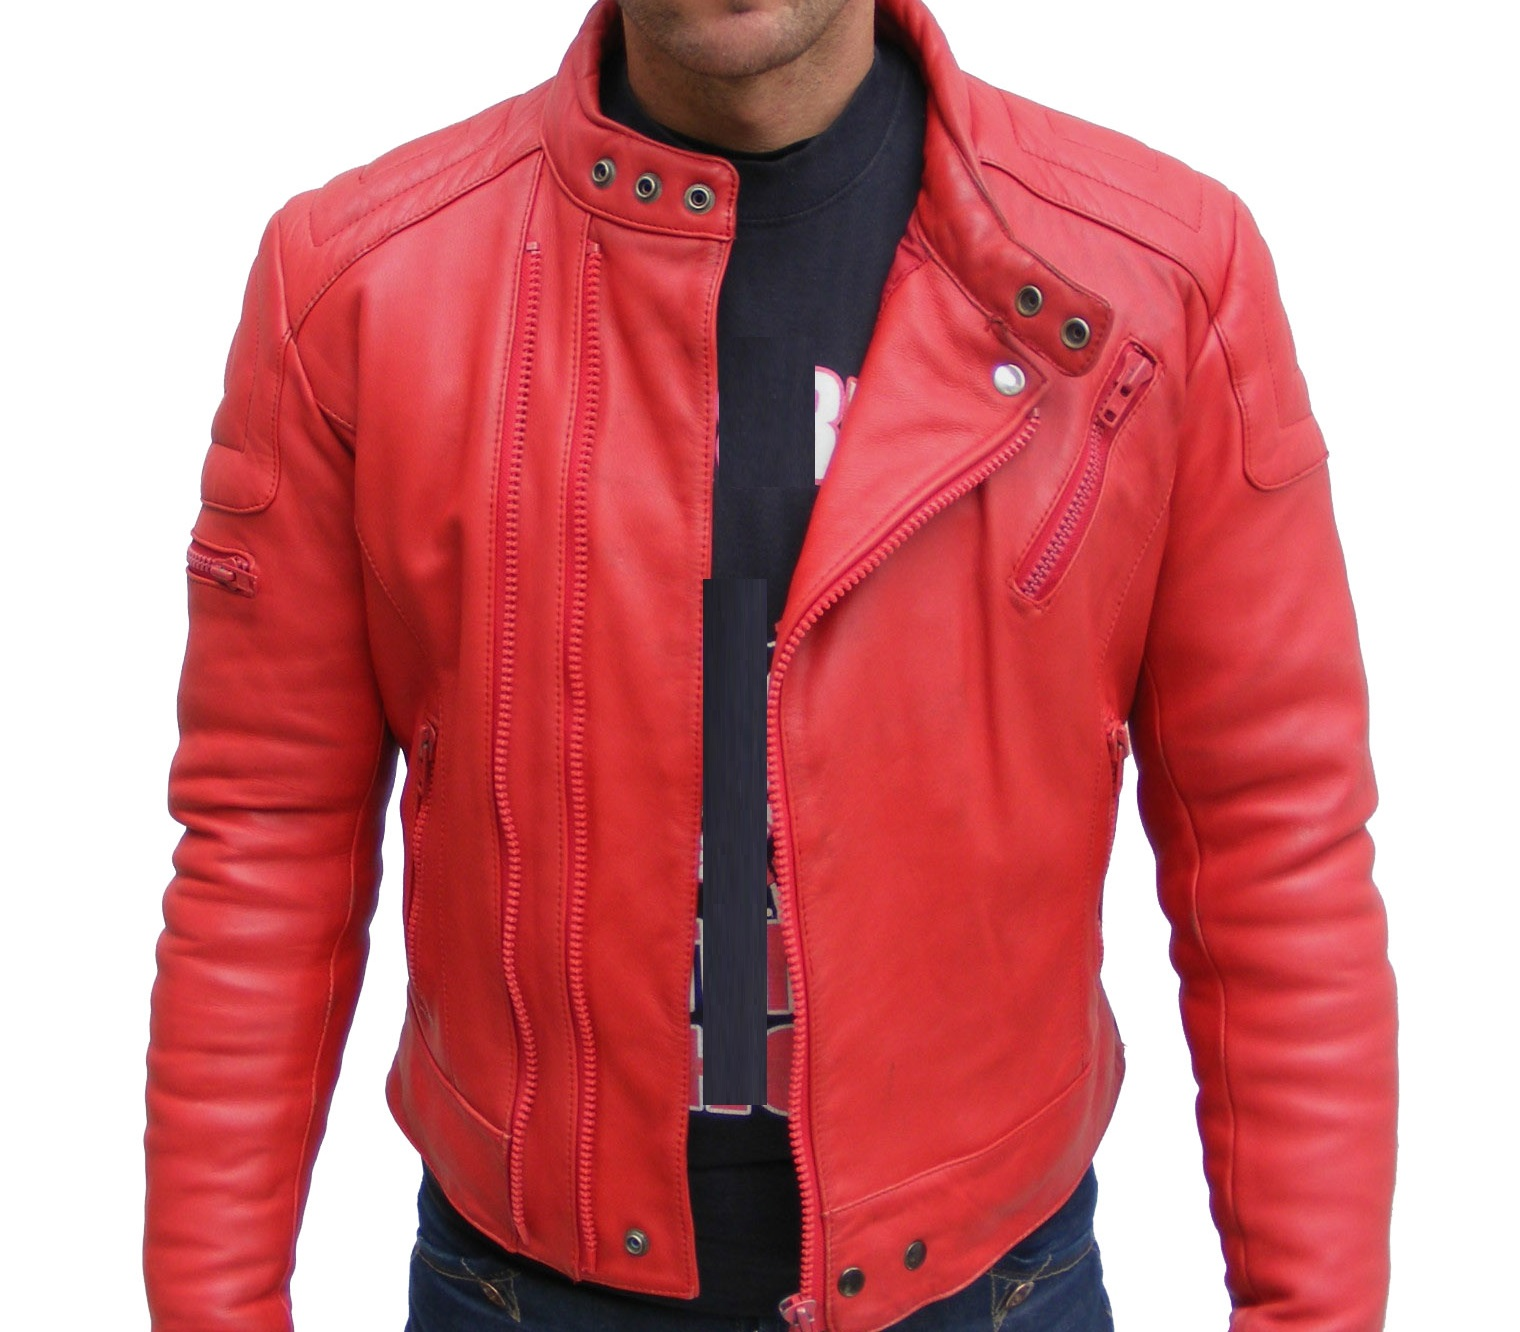 MENS BOMBER LEATHER JACKET, RED COLOR JACKET MEN, LEATHER JACKET ...